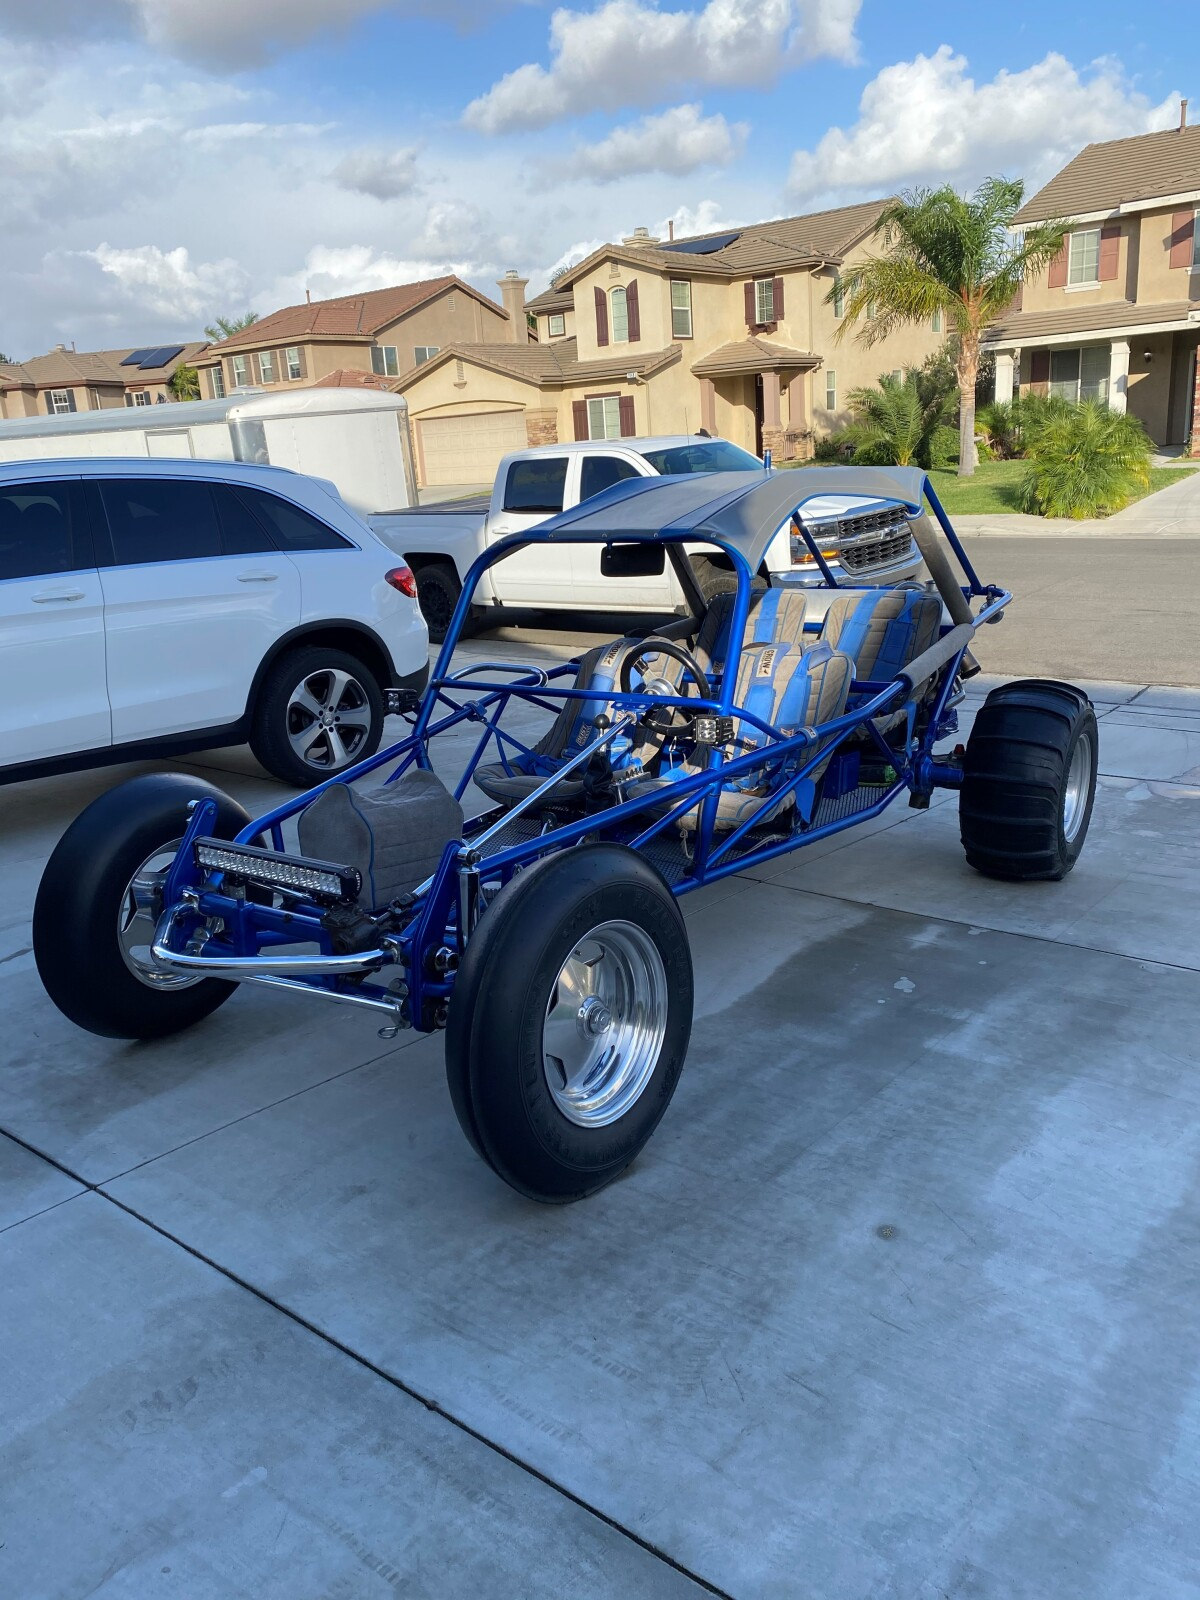 For Sale: Sand Cars Unlimited Dune Buggy - photo1